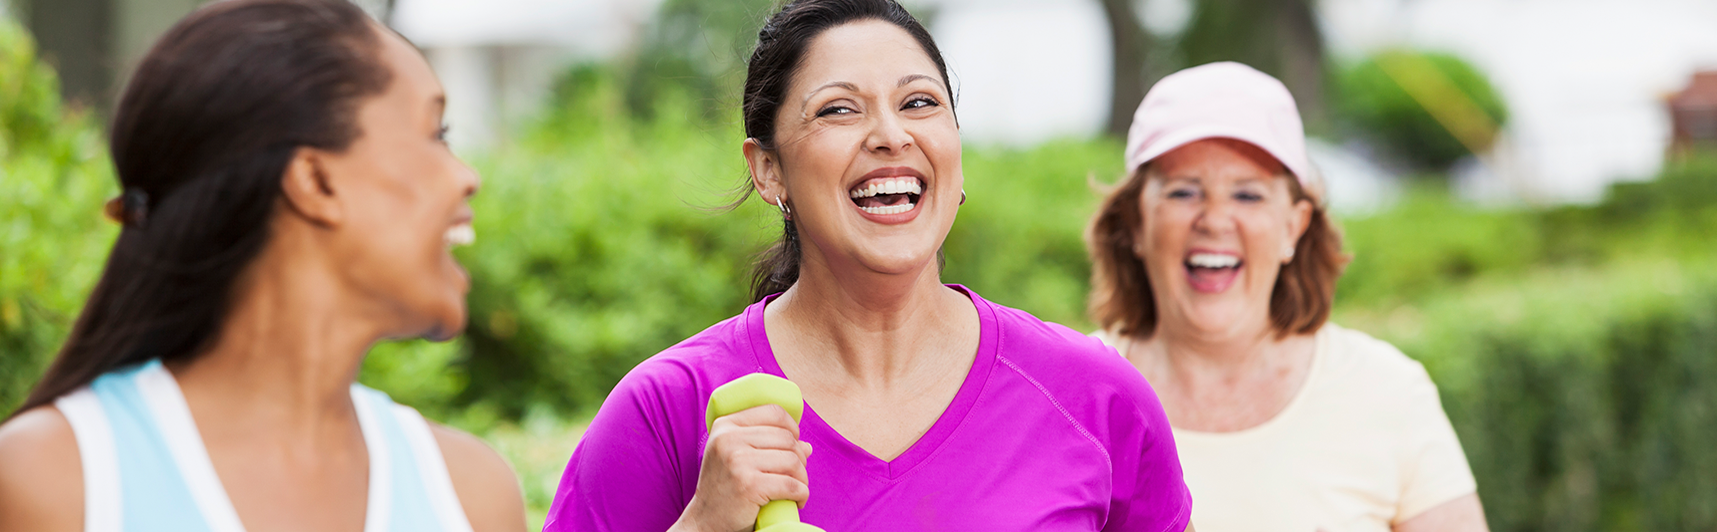 3 women jogging and laughing